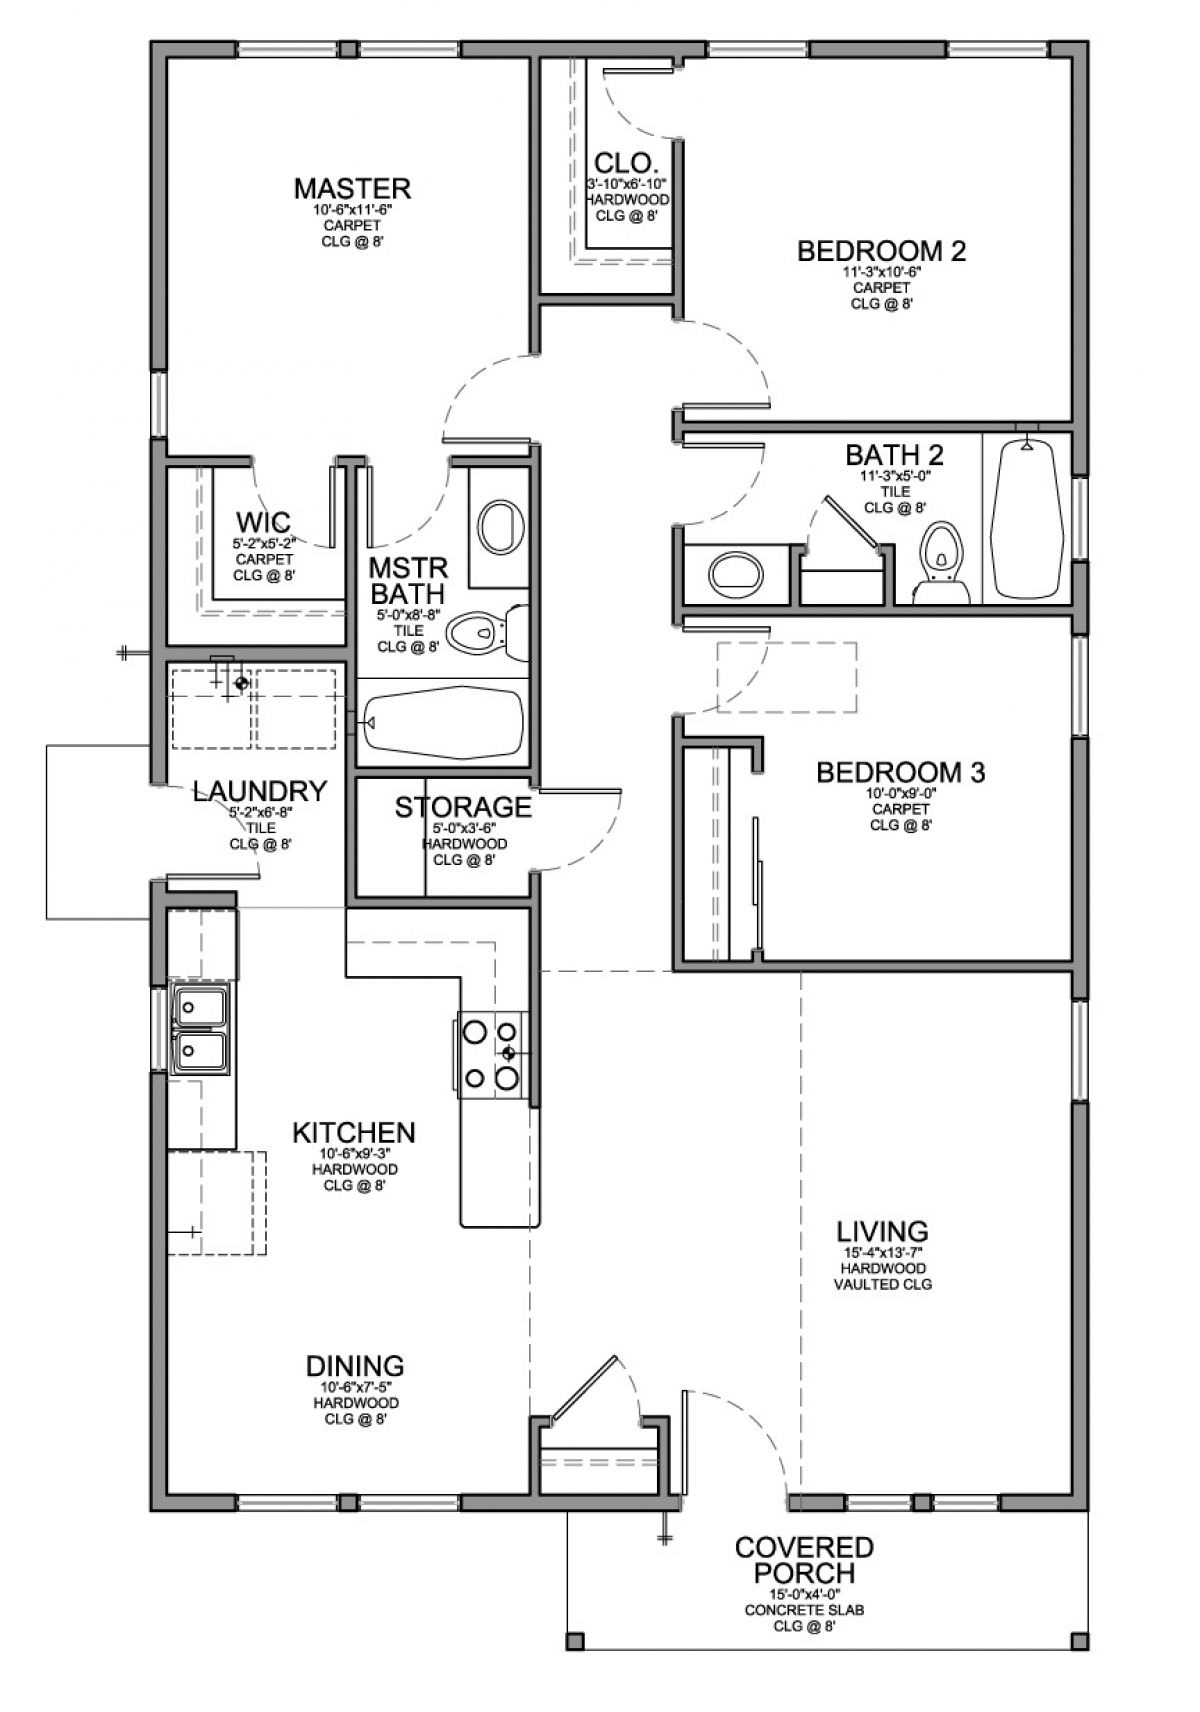 Modern House Plans with Cost to Build Awesome Floor Plans and Cost Build Plan for Small House Tamilnadu